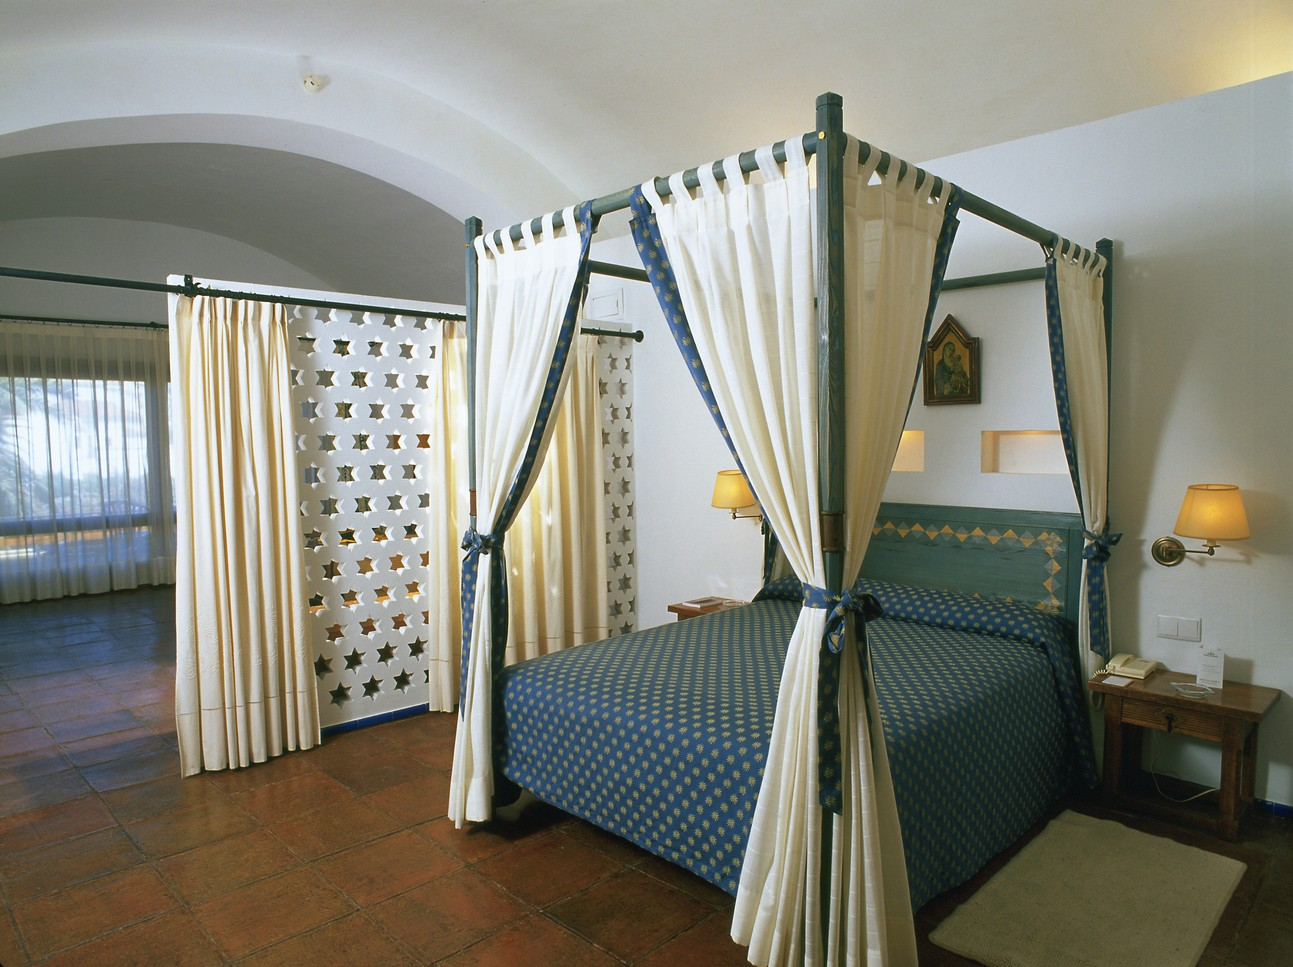 Superior room at Parador de Ceuta